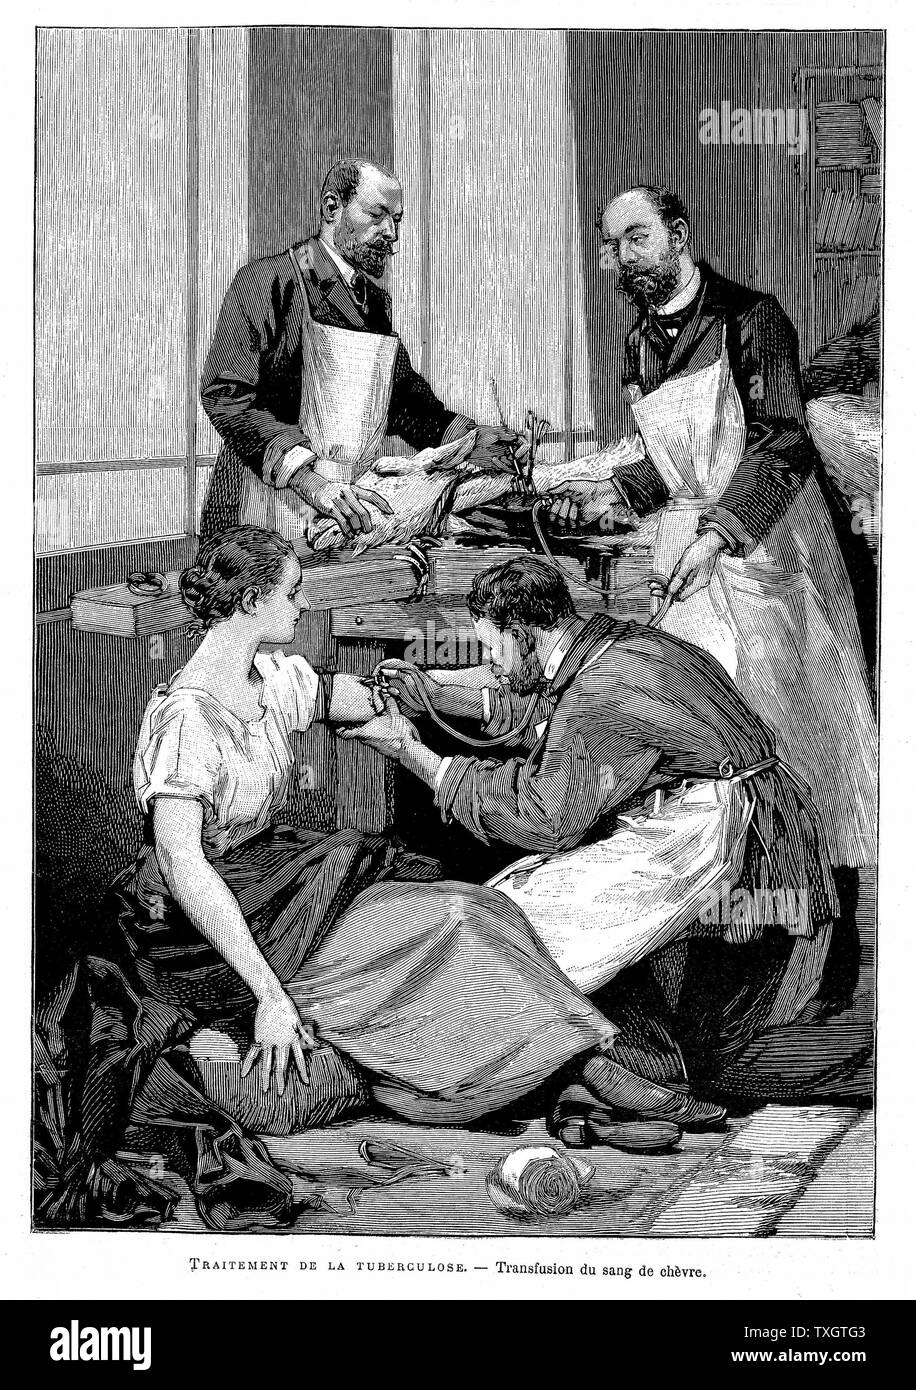 Tubercular patient being given direct blood transfusion from a goat at Dr Bernheim's clinic 1891 Engraving Paris - Stock Image